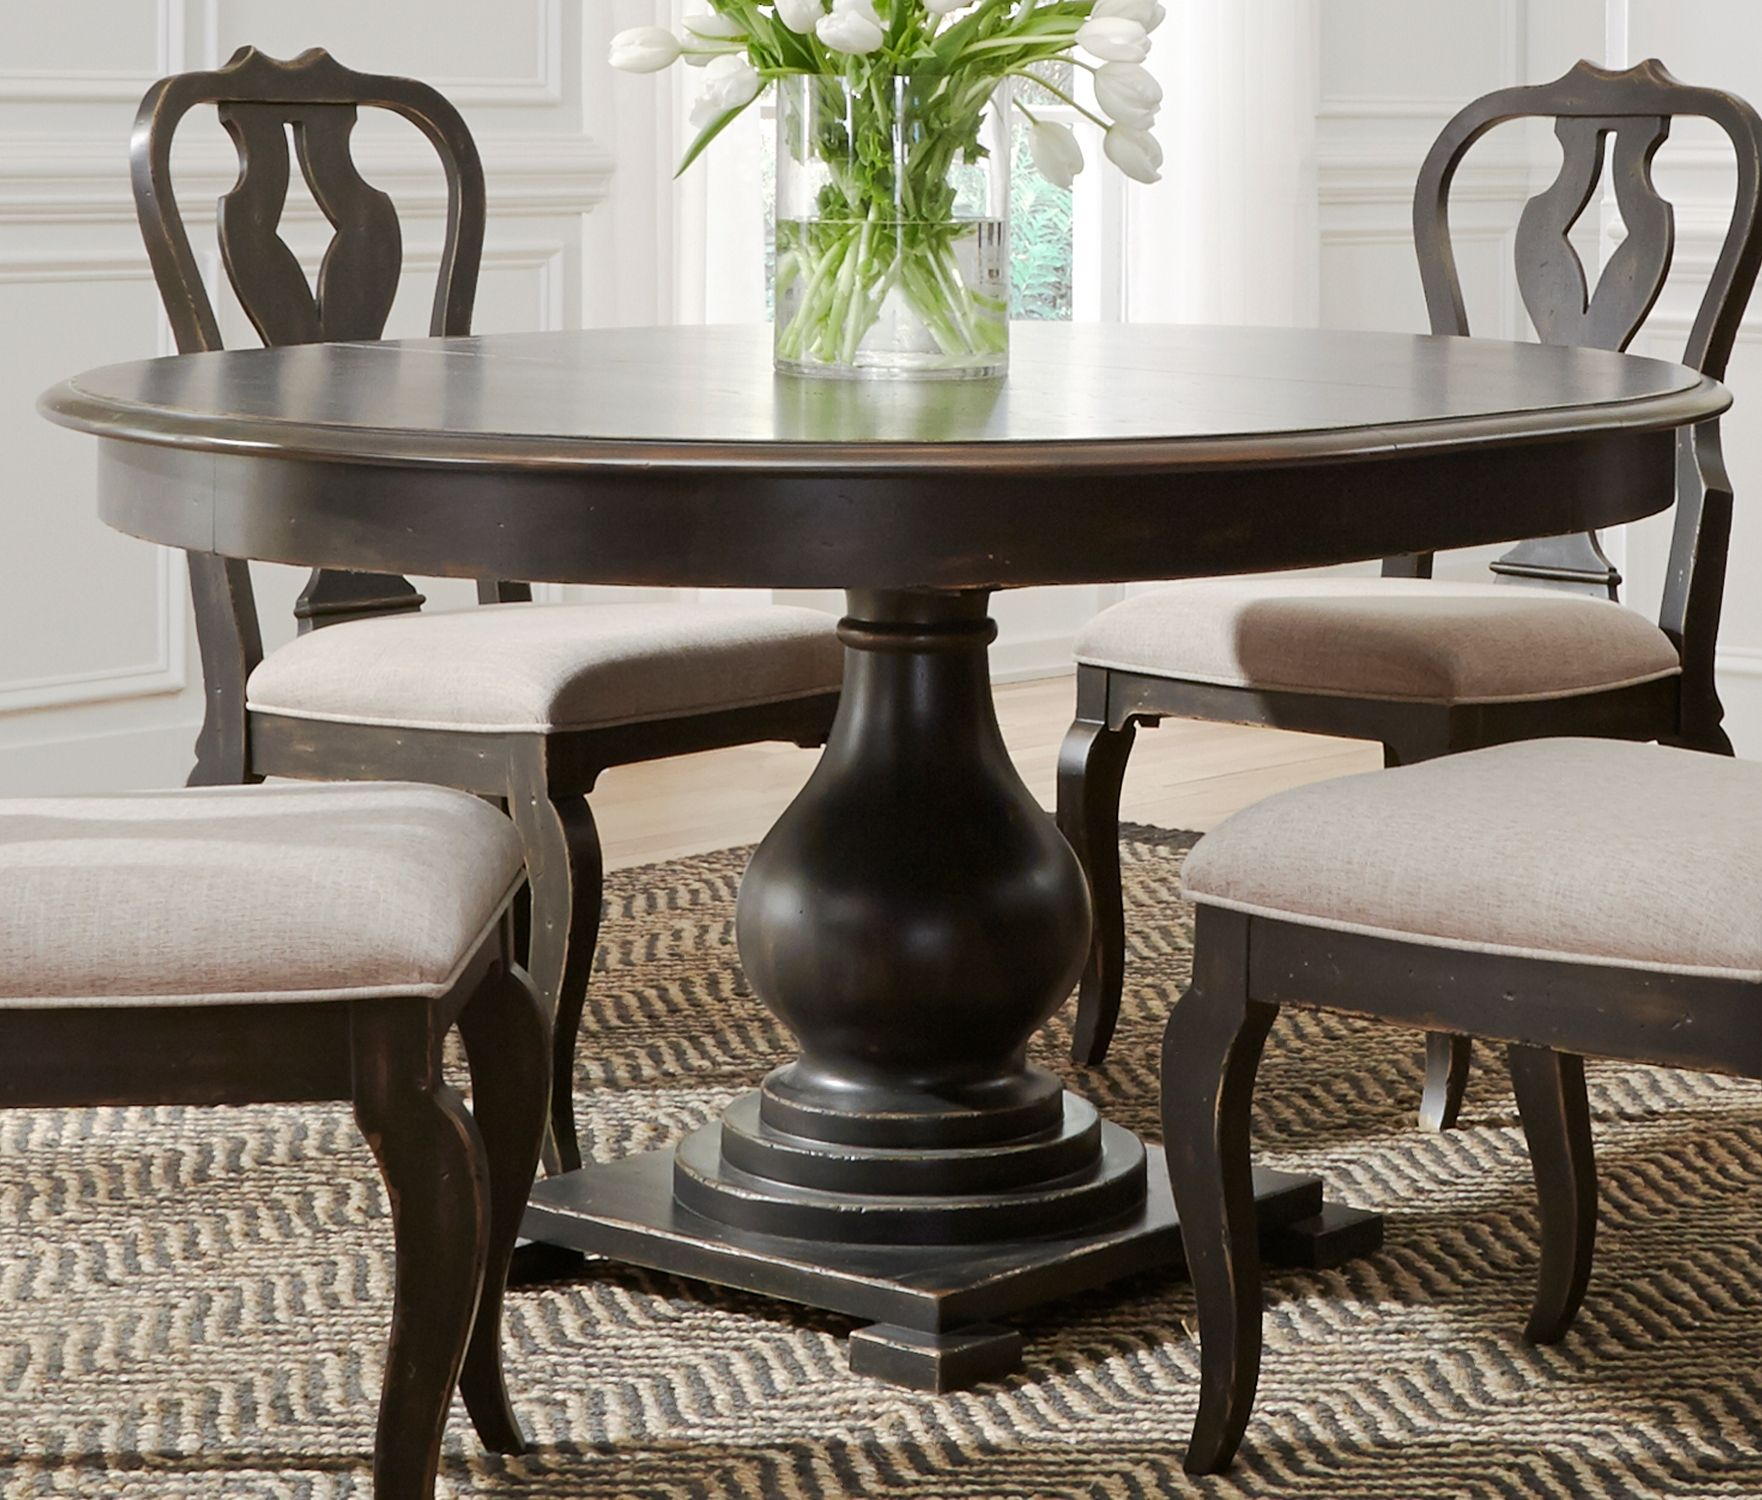 Liberty Chesapeake Antique Black Extendable Round Dining Intended For Newest 28'' Pedestal Dining Tables (View 11 of 15)